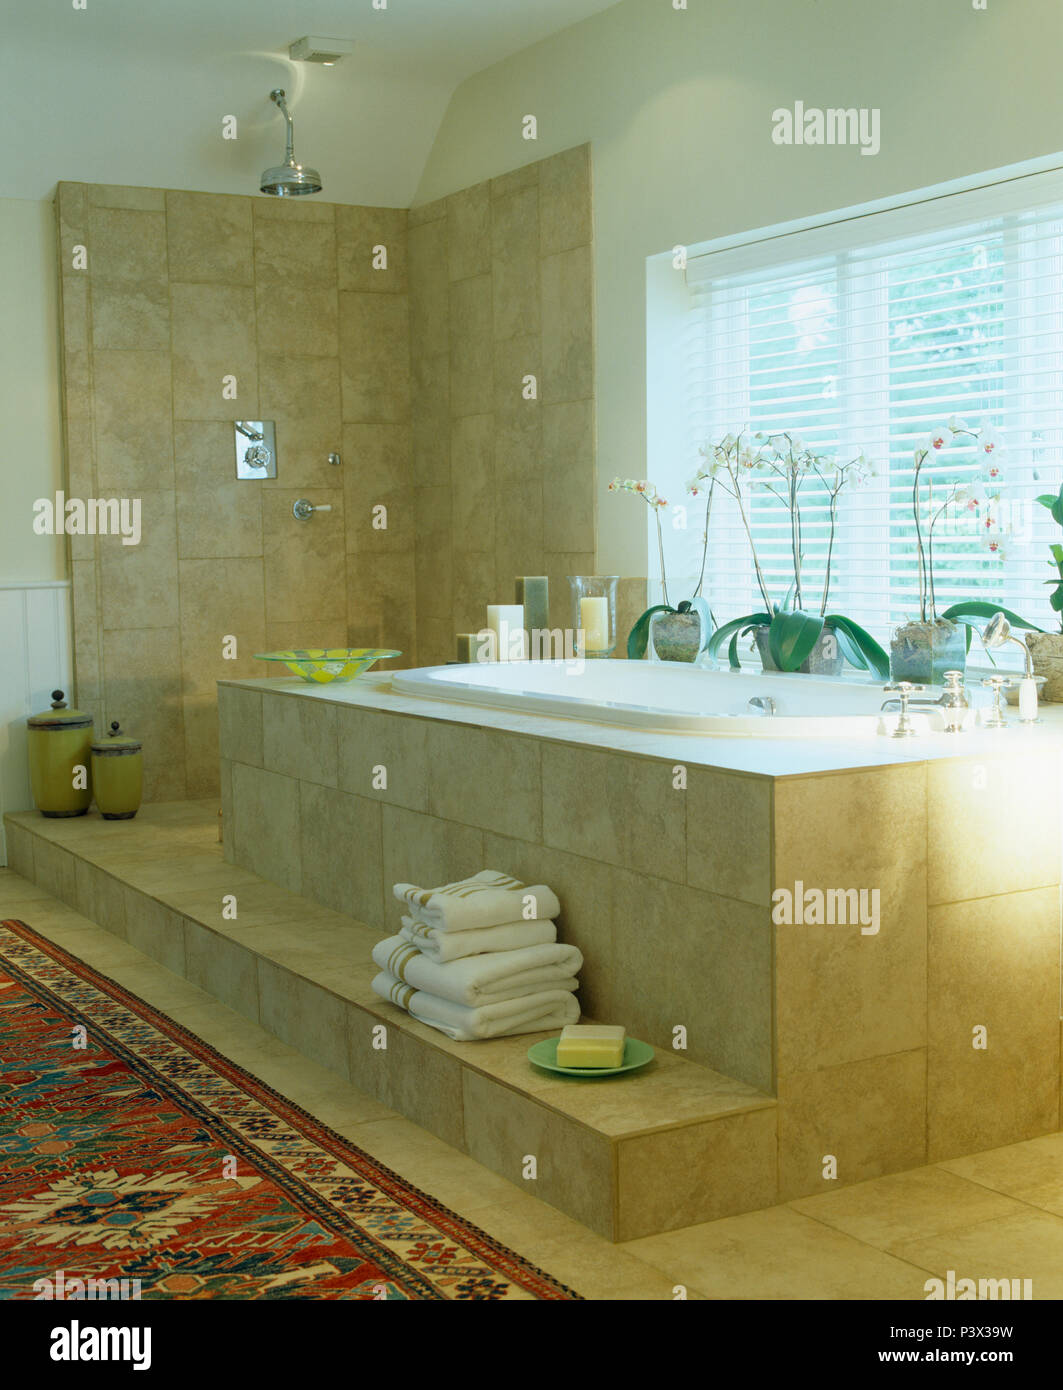 https www alamy com pile of white towels on step below travertine tiled bath in modern bathroom with wet room style shower image208941765 html